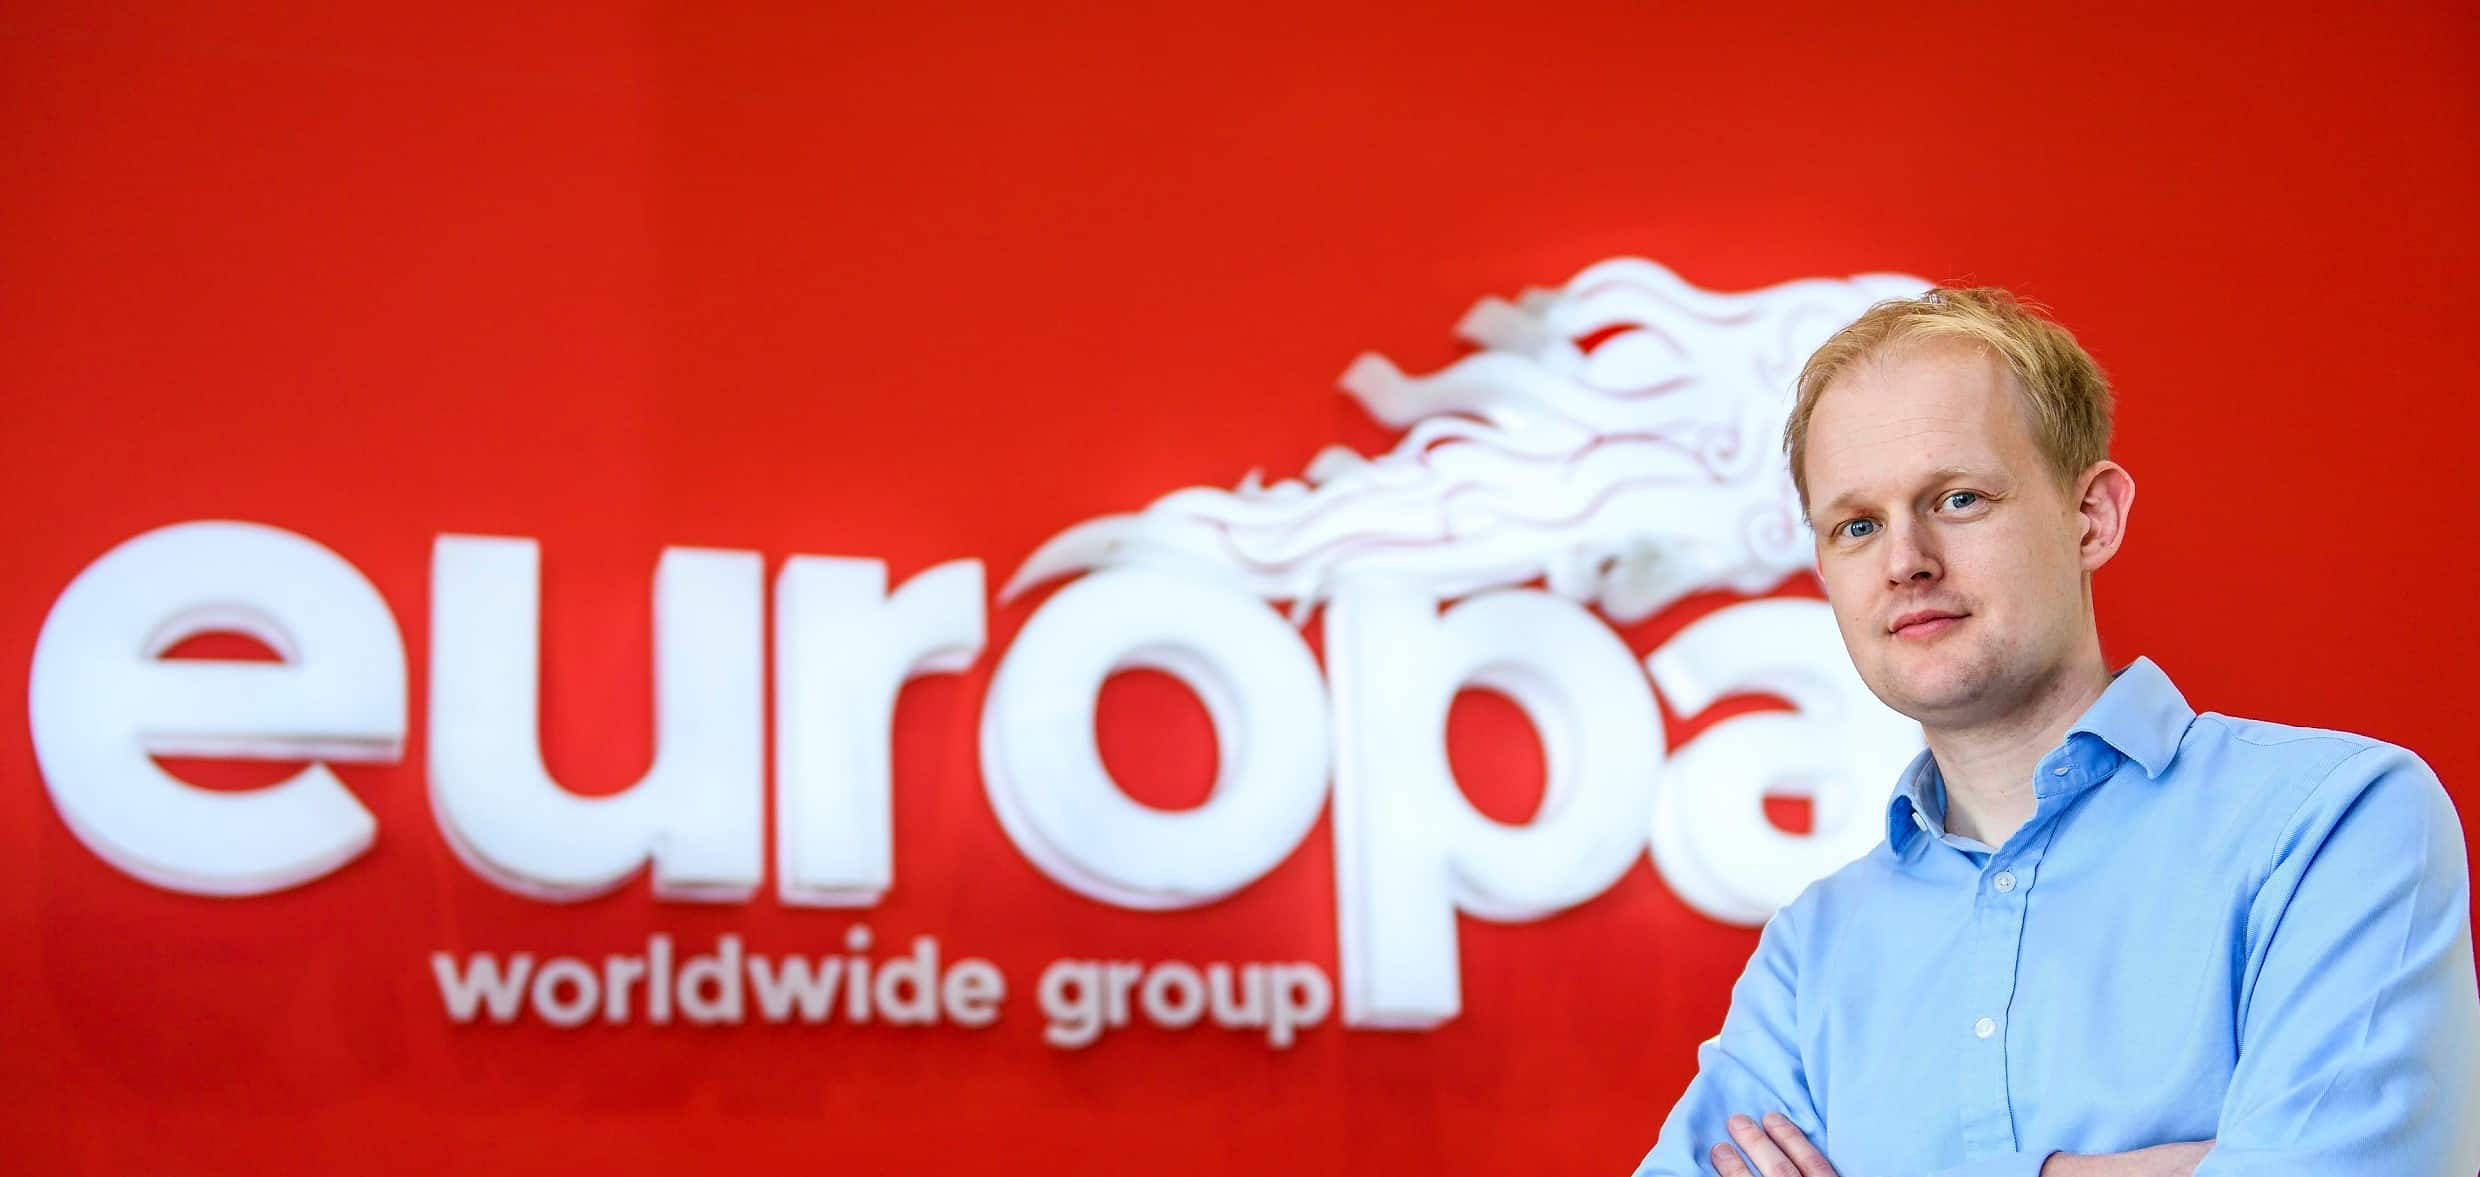 Europa Recognises Talent Within The Business